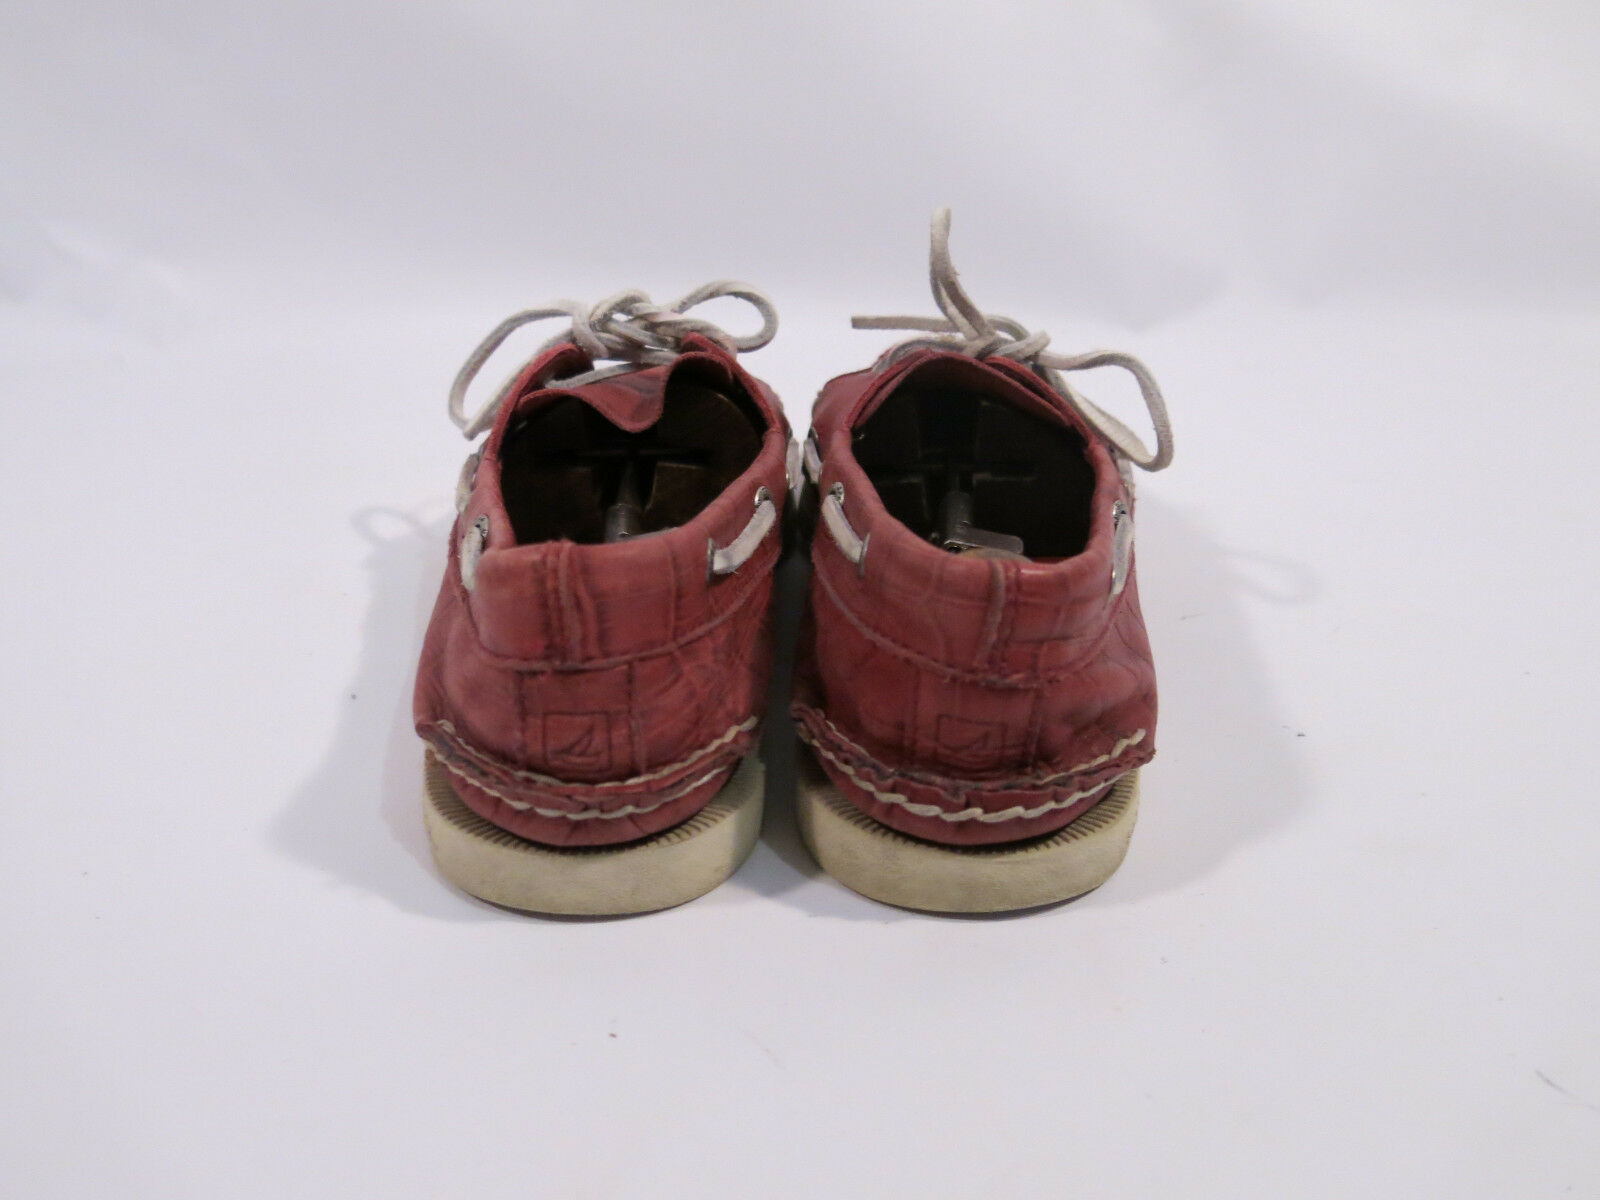 Sperry Uomo 9 M Red 2 Crocodile Gator Embossed Print Pelle 2 Red Eye A/O Boat Shoes 14e7f7